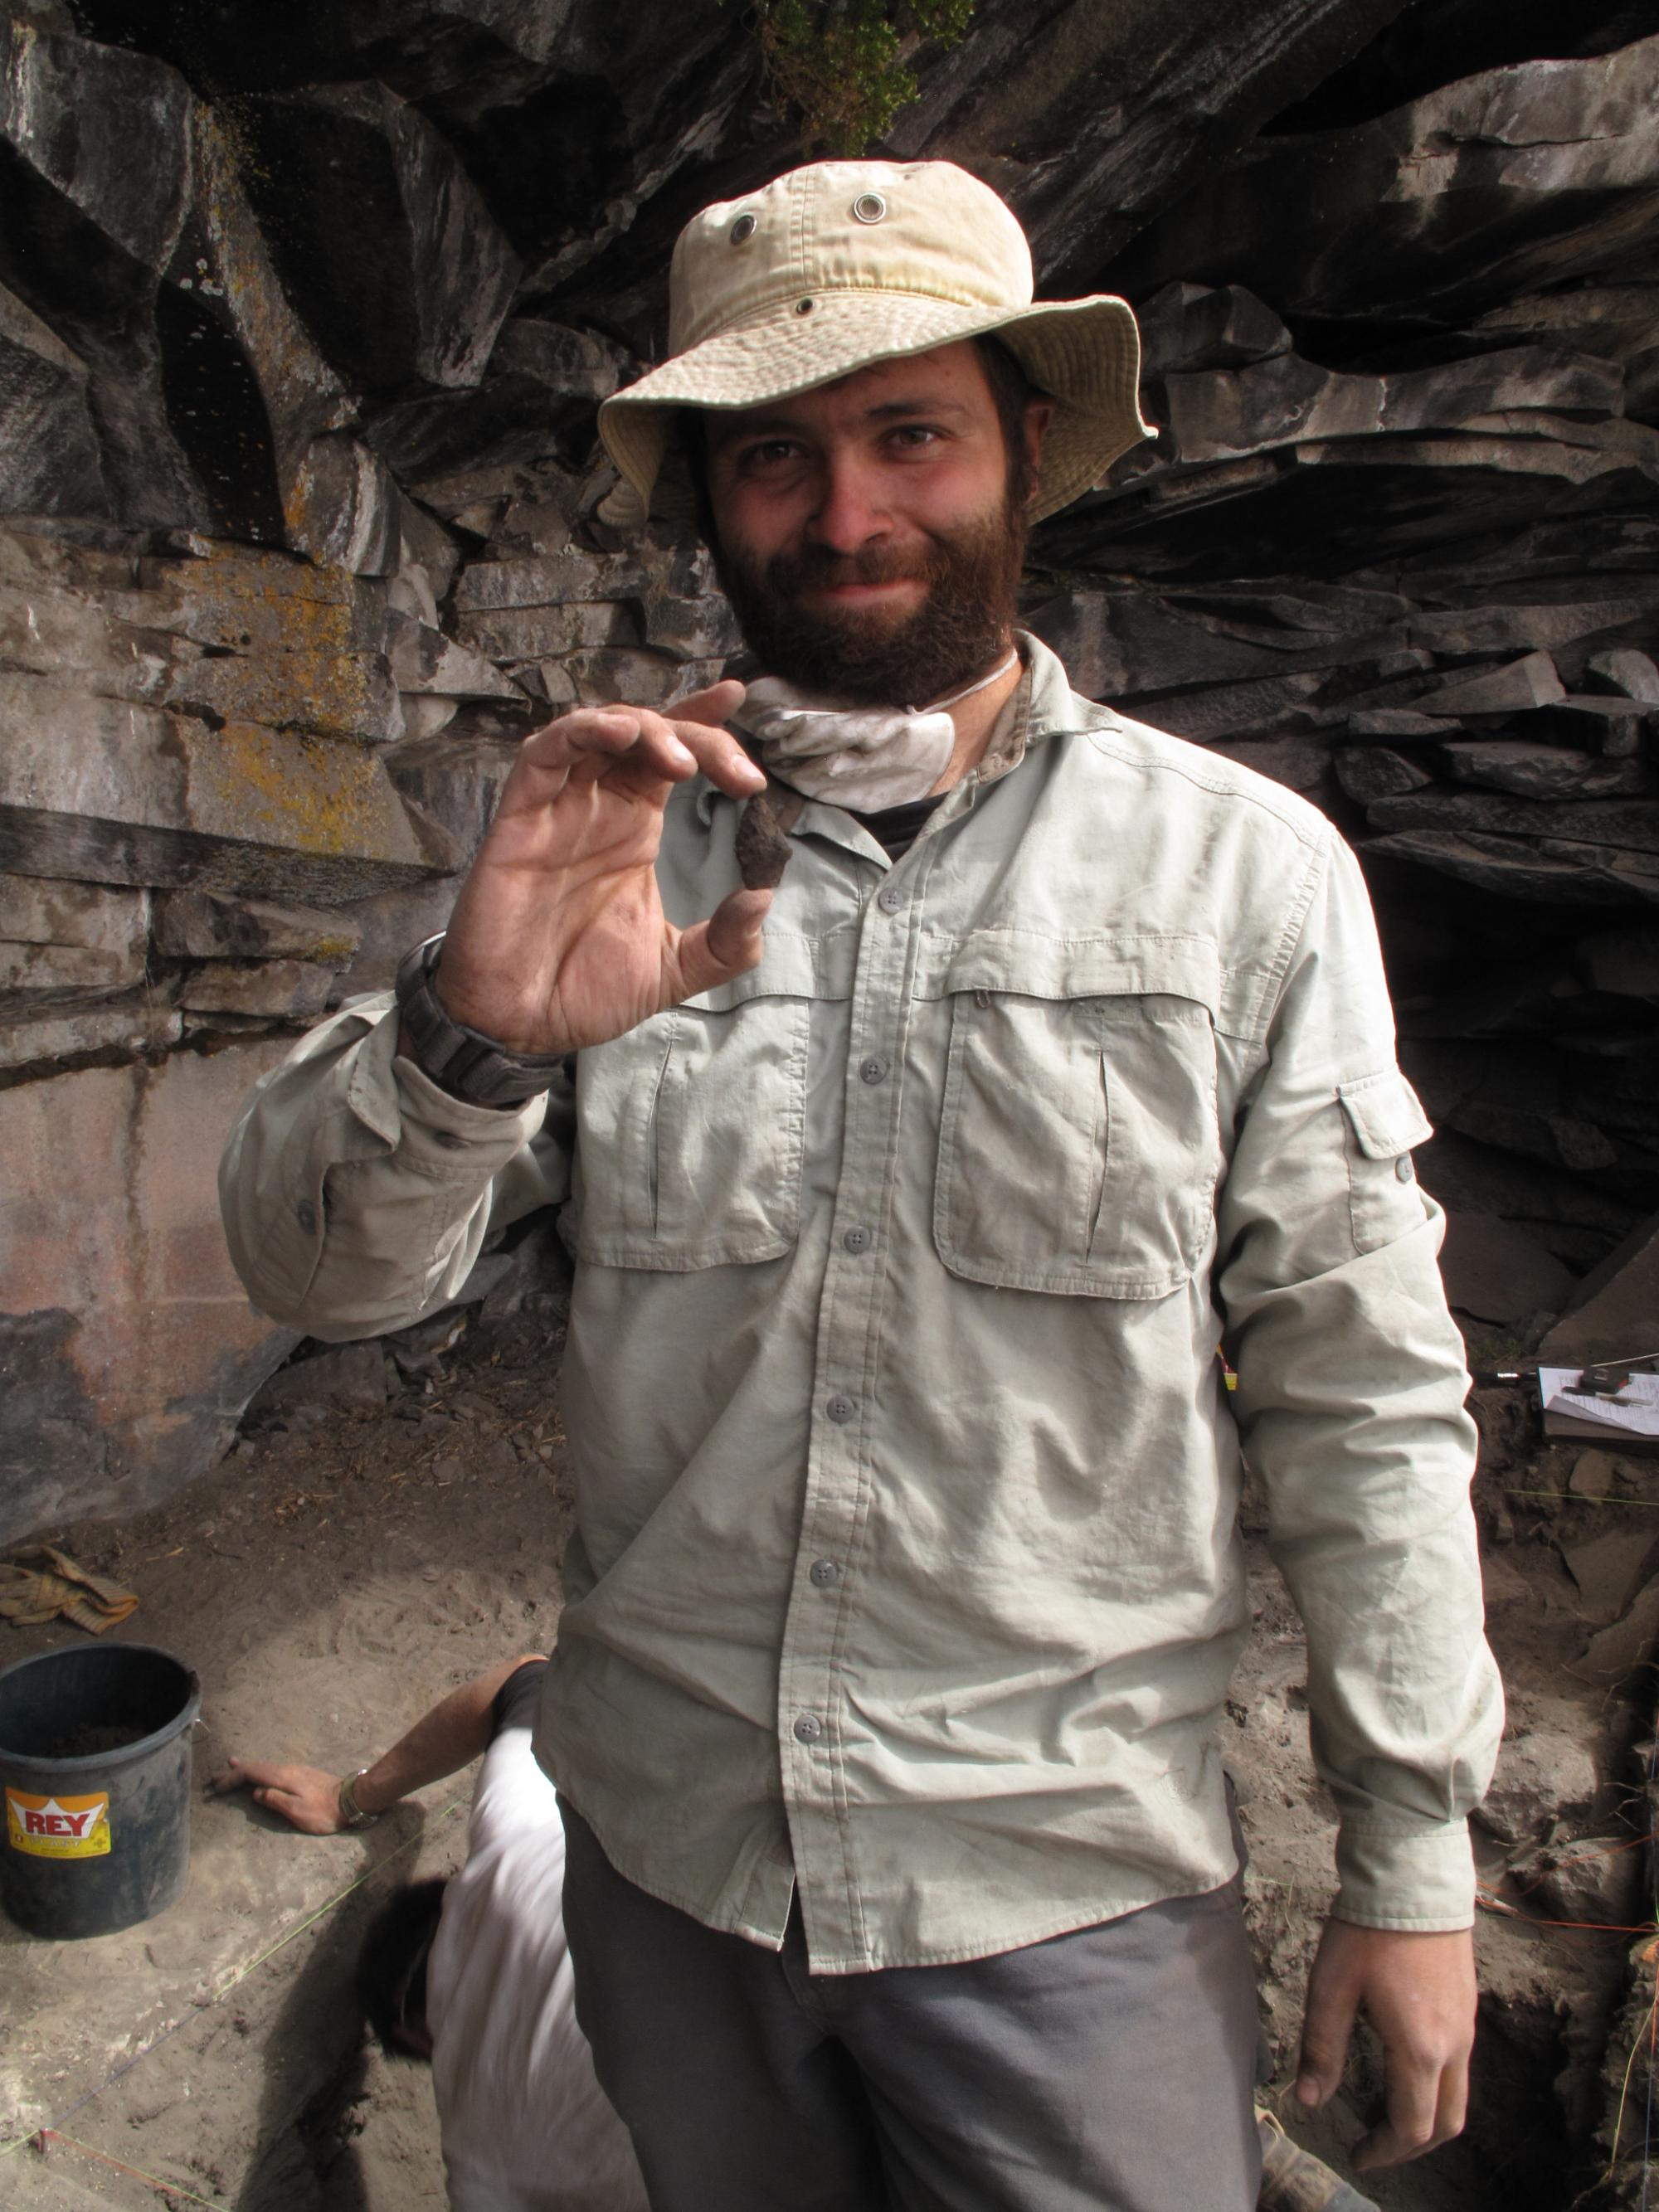 David Reid, a member of the archaeology team, holds up a projectile point fragment left behind by the first known high-altitude settlers.